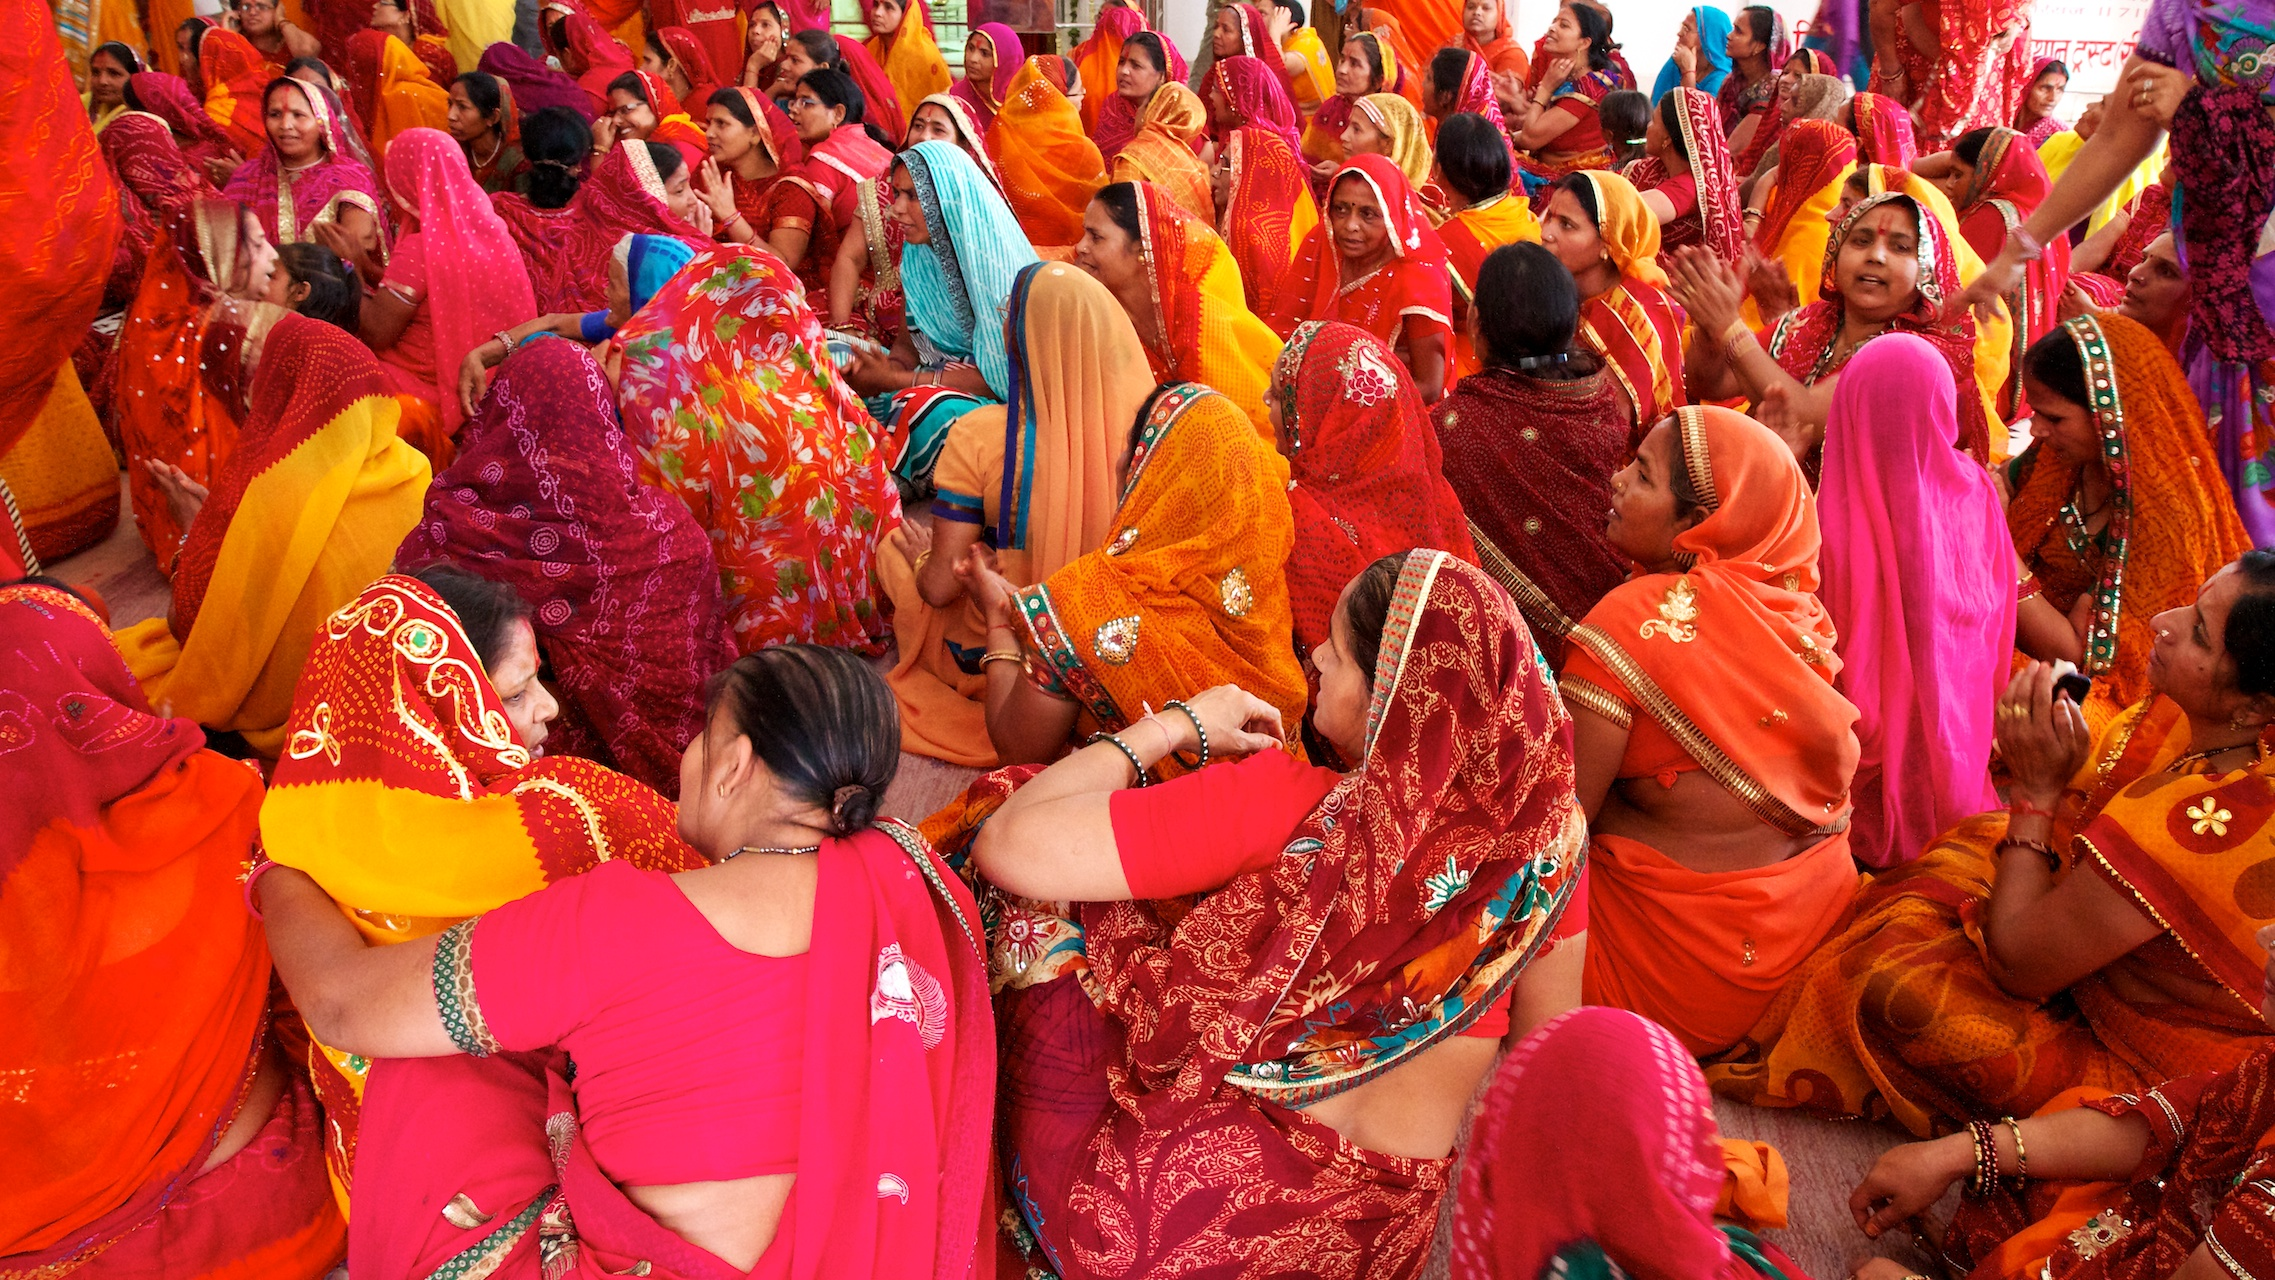 Hindu ladies at a reading of Bhagavad Gita